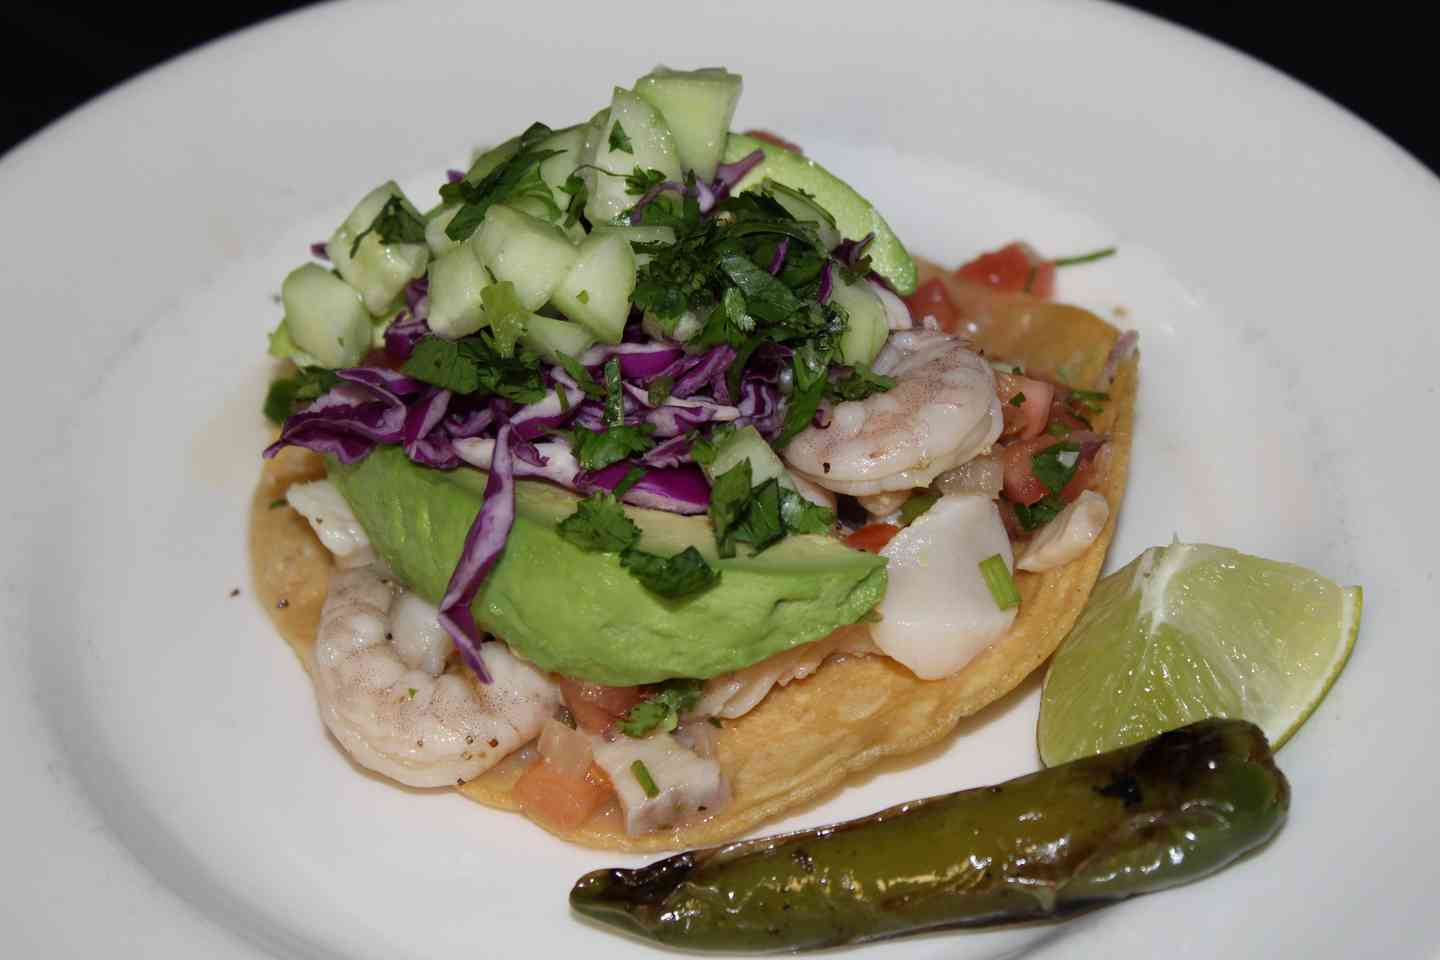 *Shrimp, Fish, or Ceviche Tostada